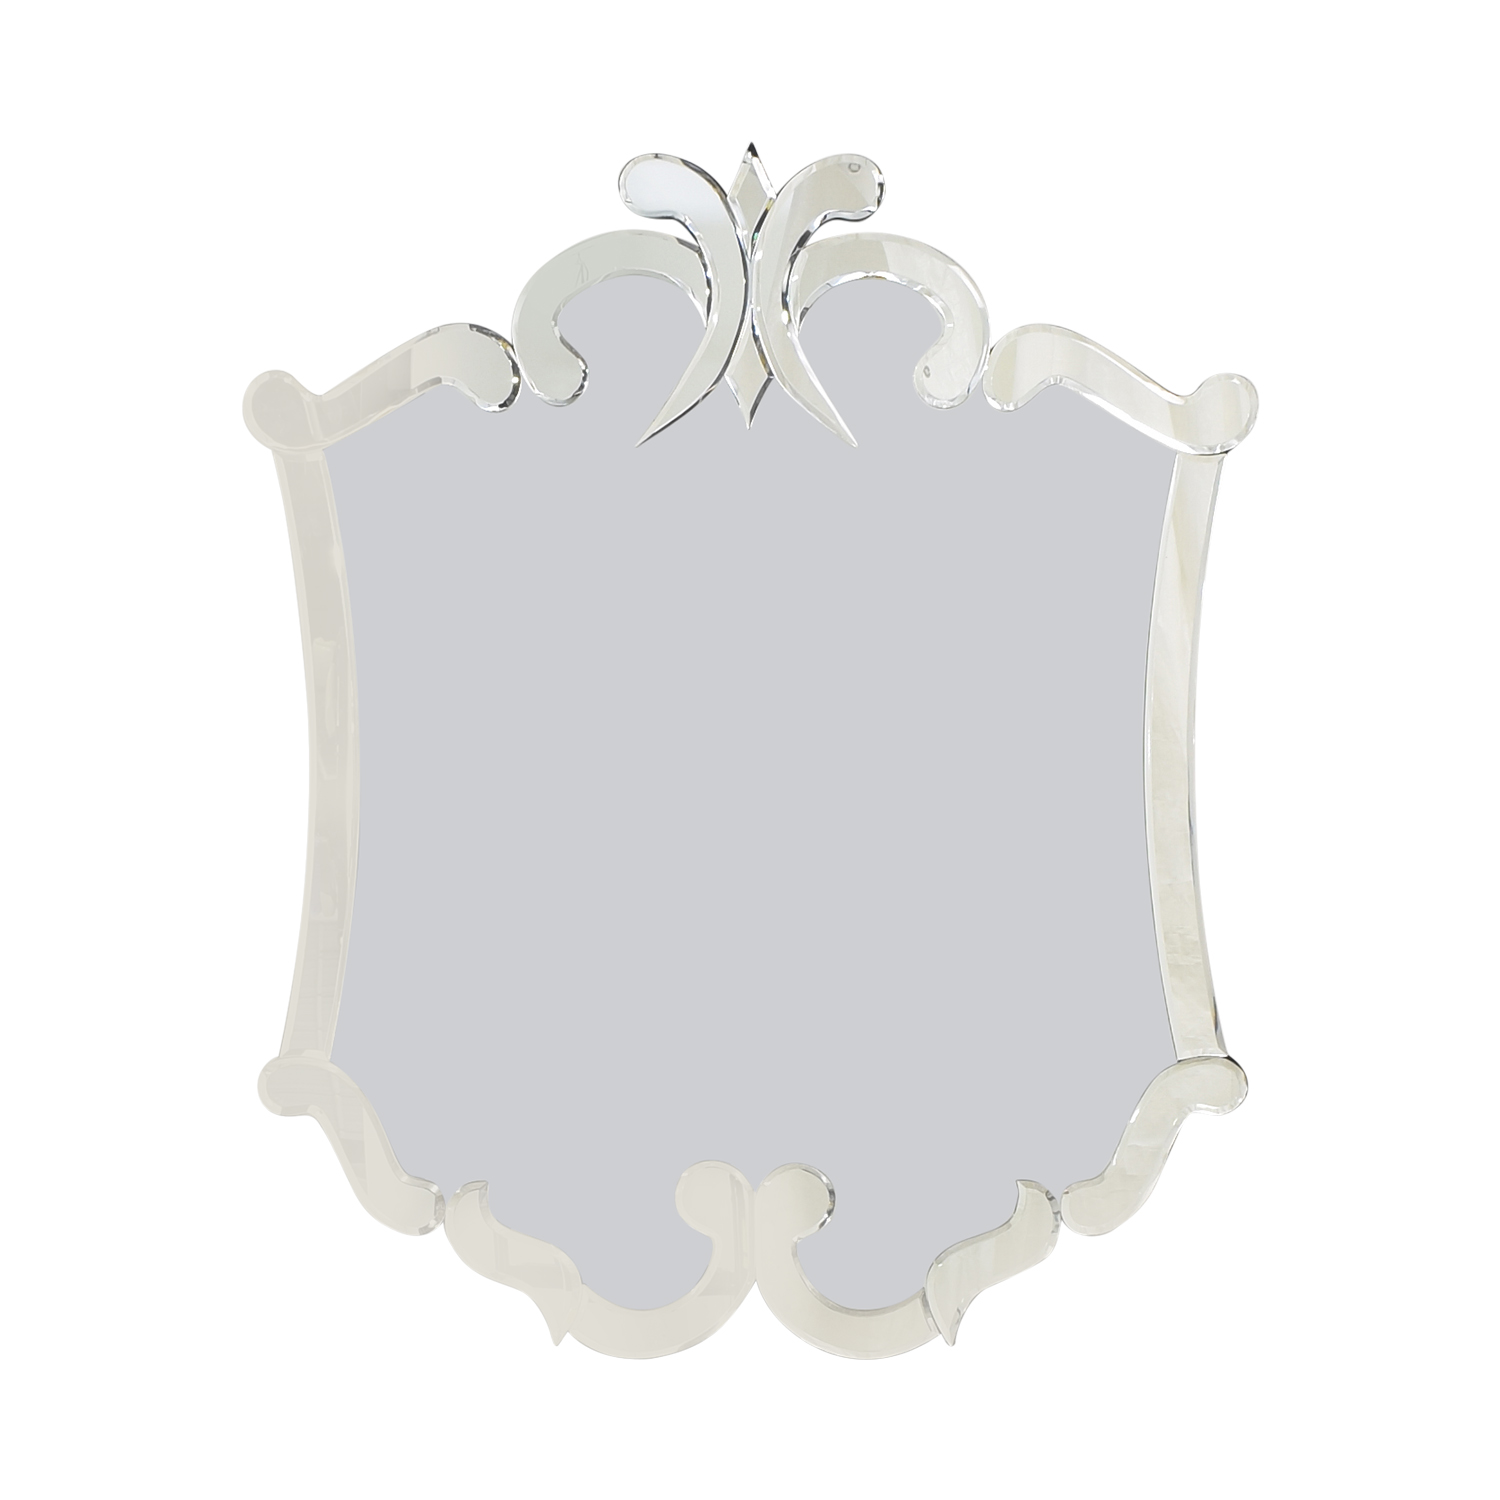 buy  Mirrored Border Wall Mirror online